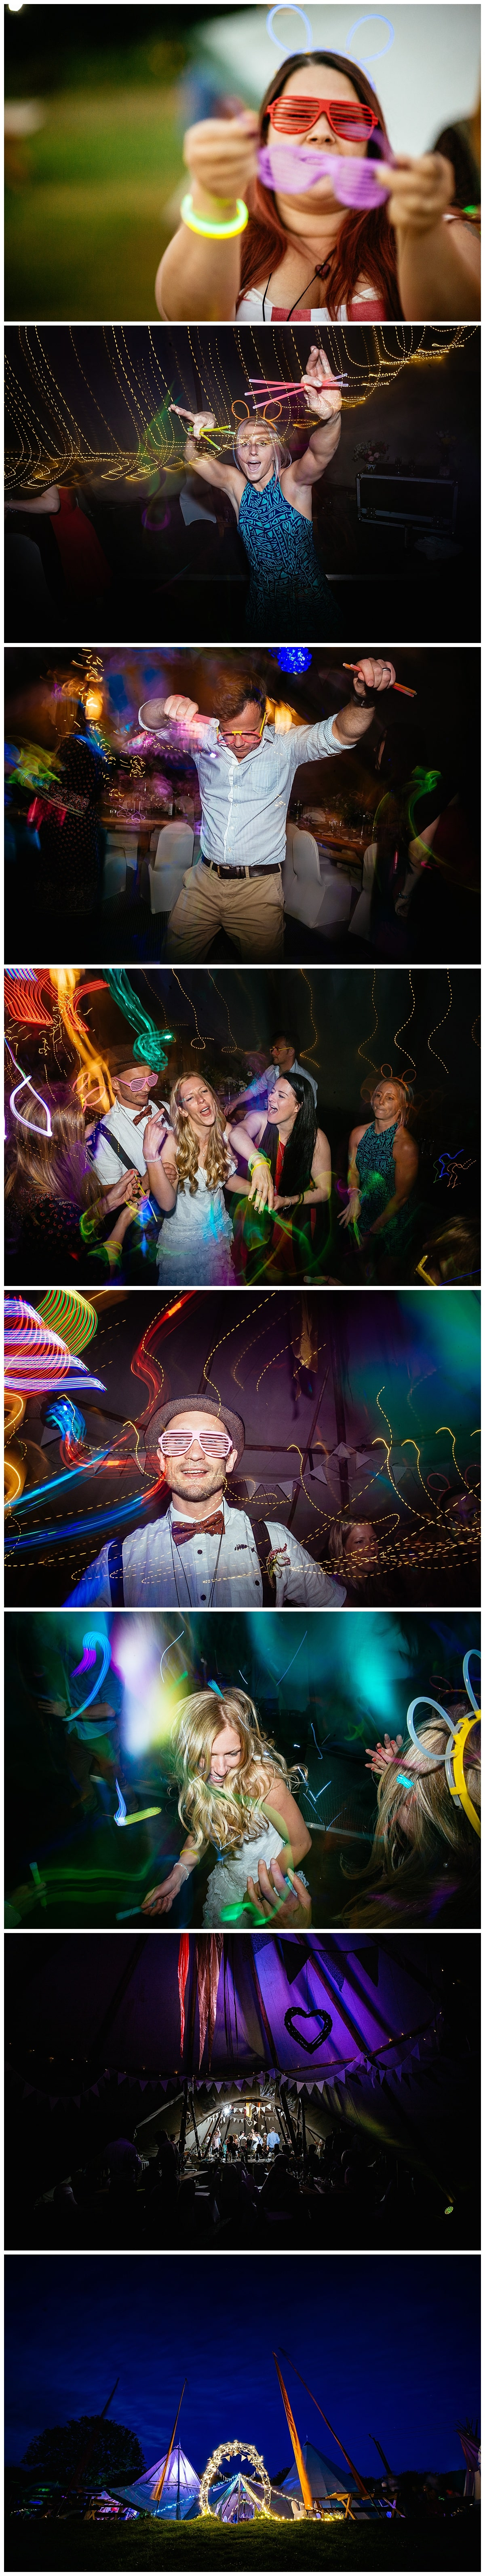 Images of a fun and colourful wedding